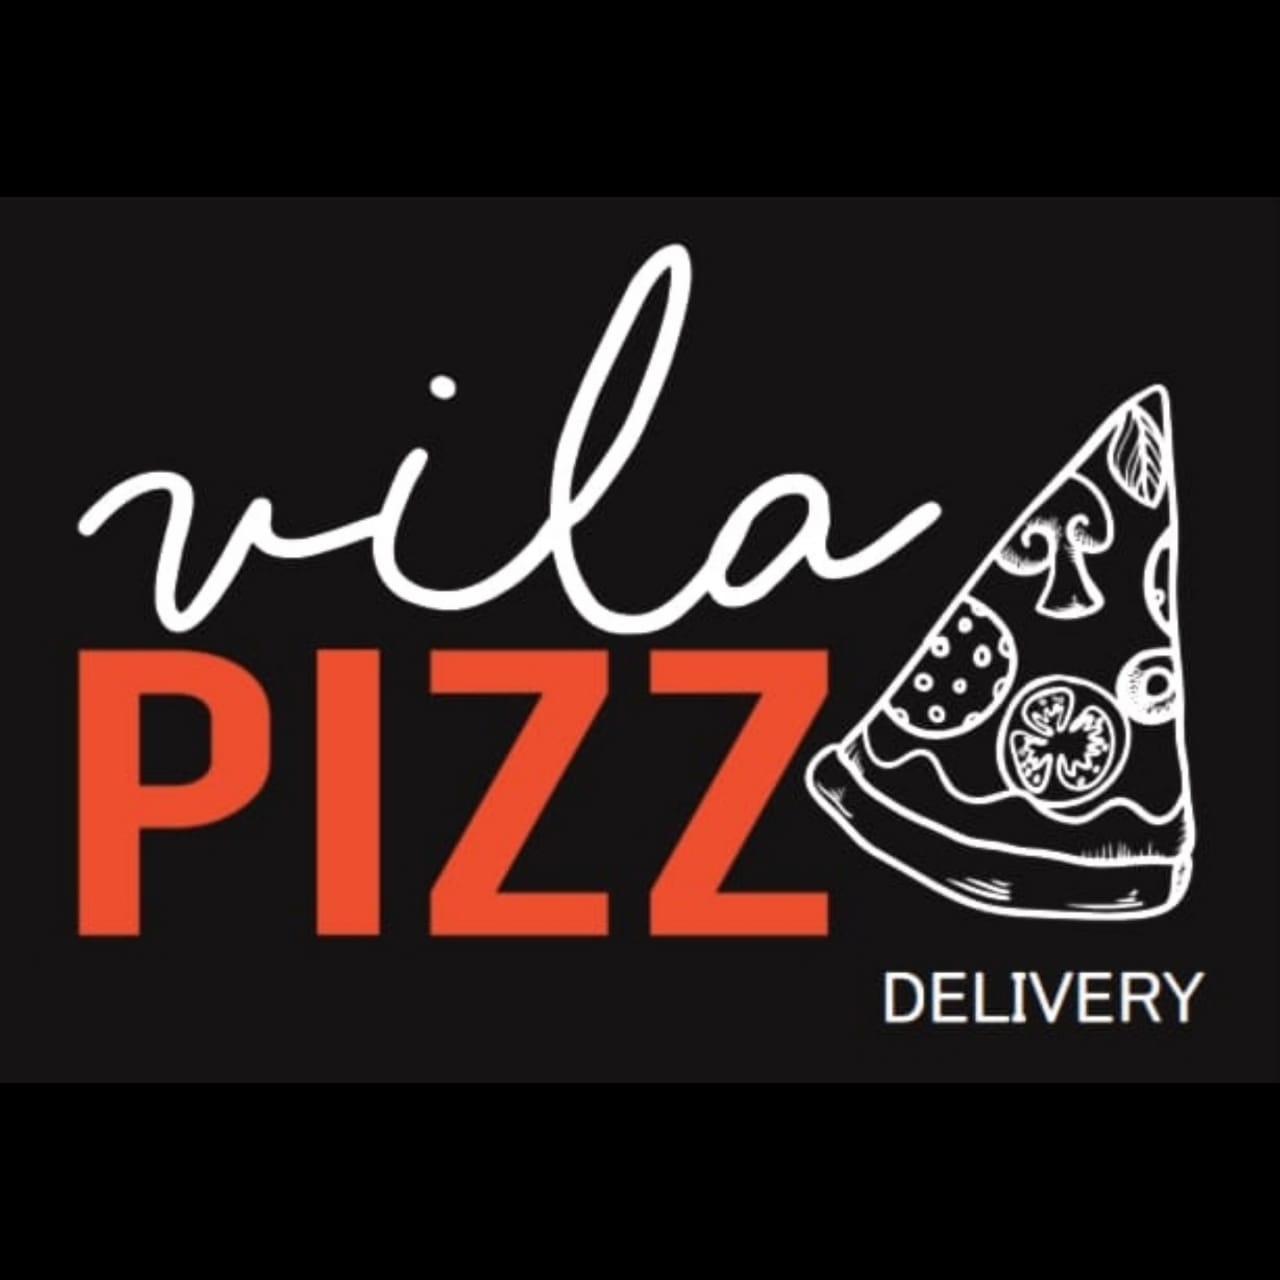 VILA PIZZA